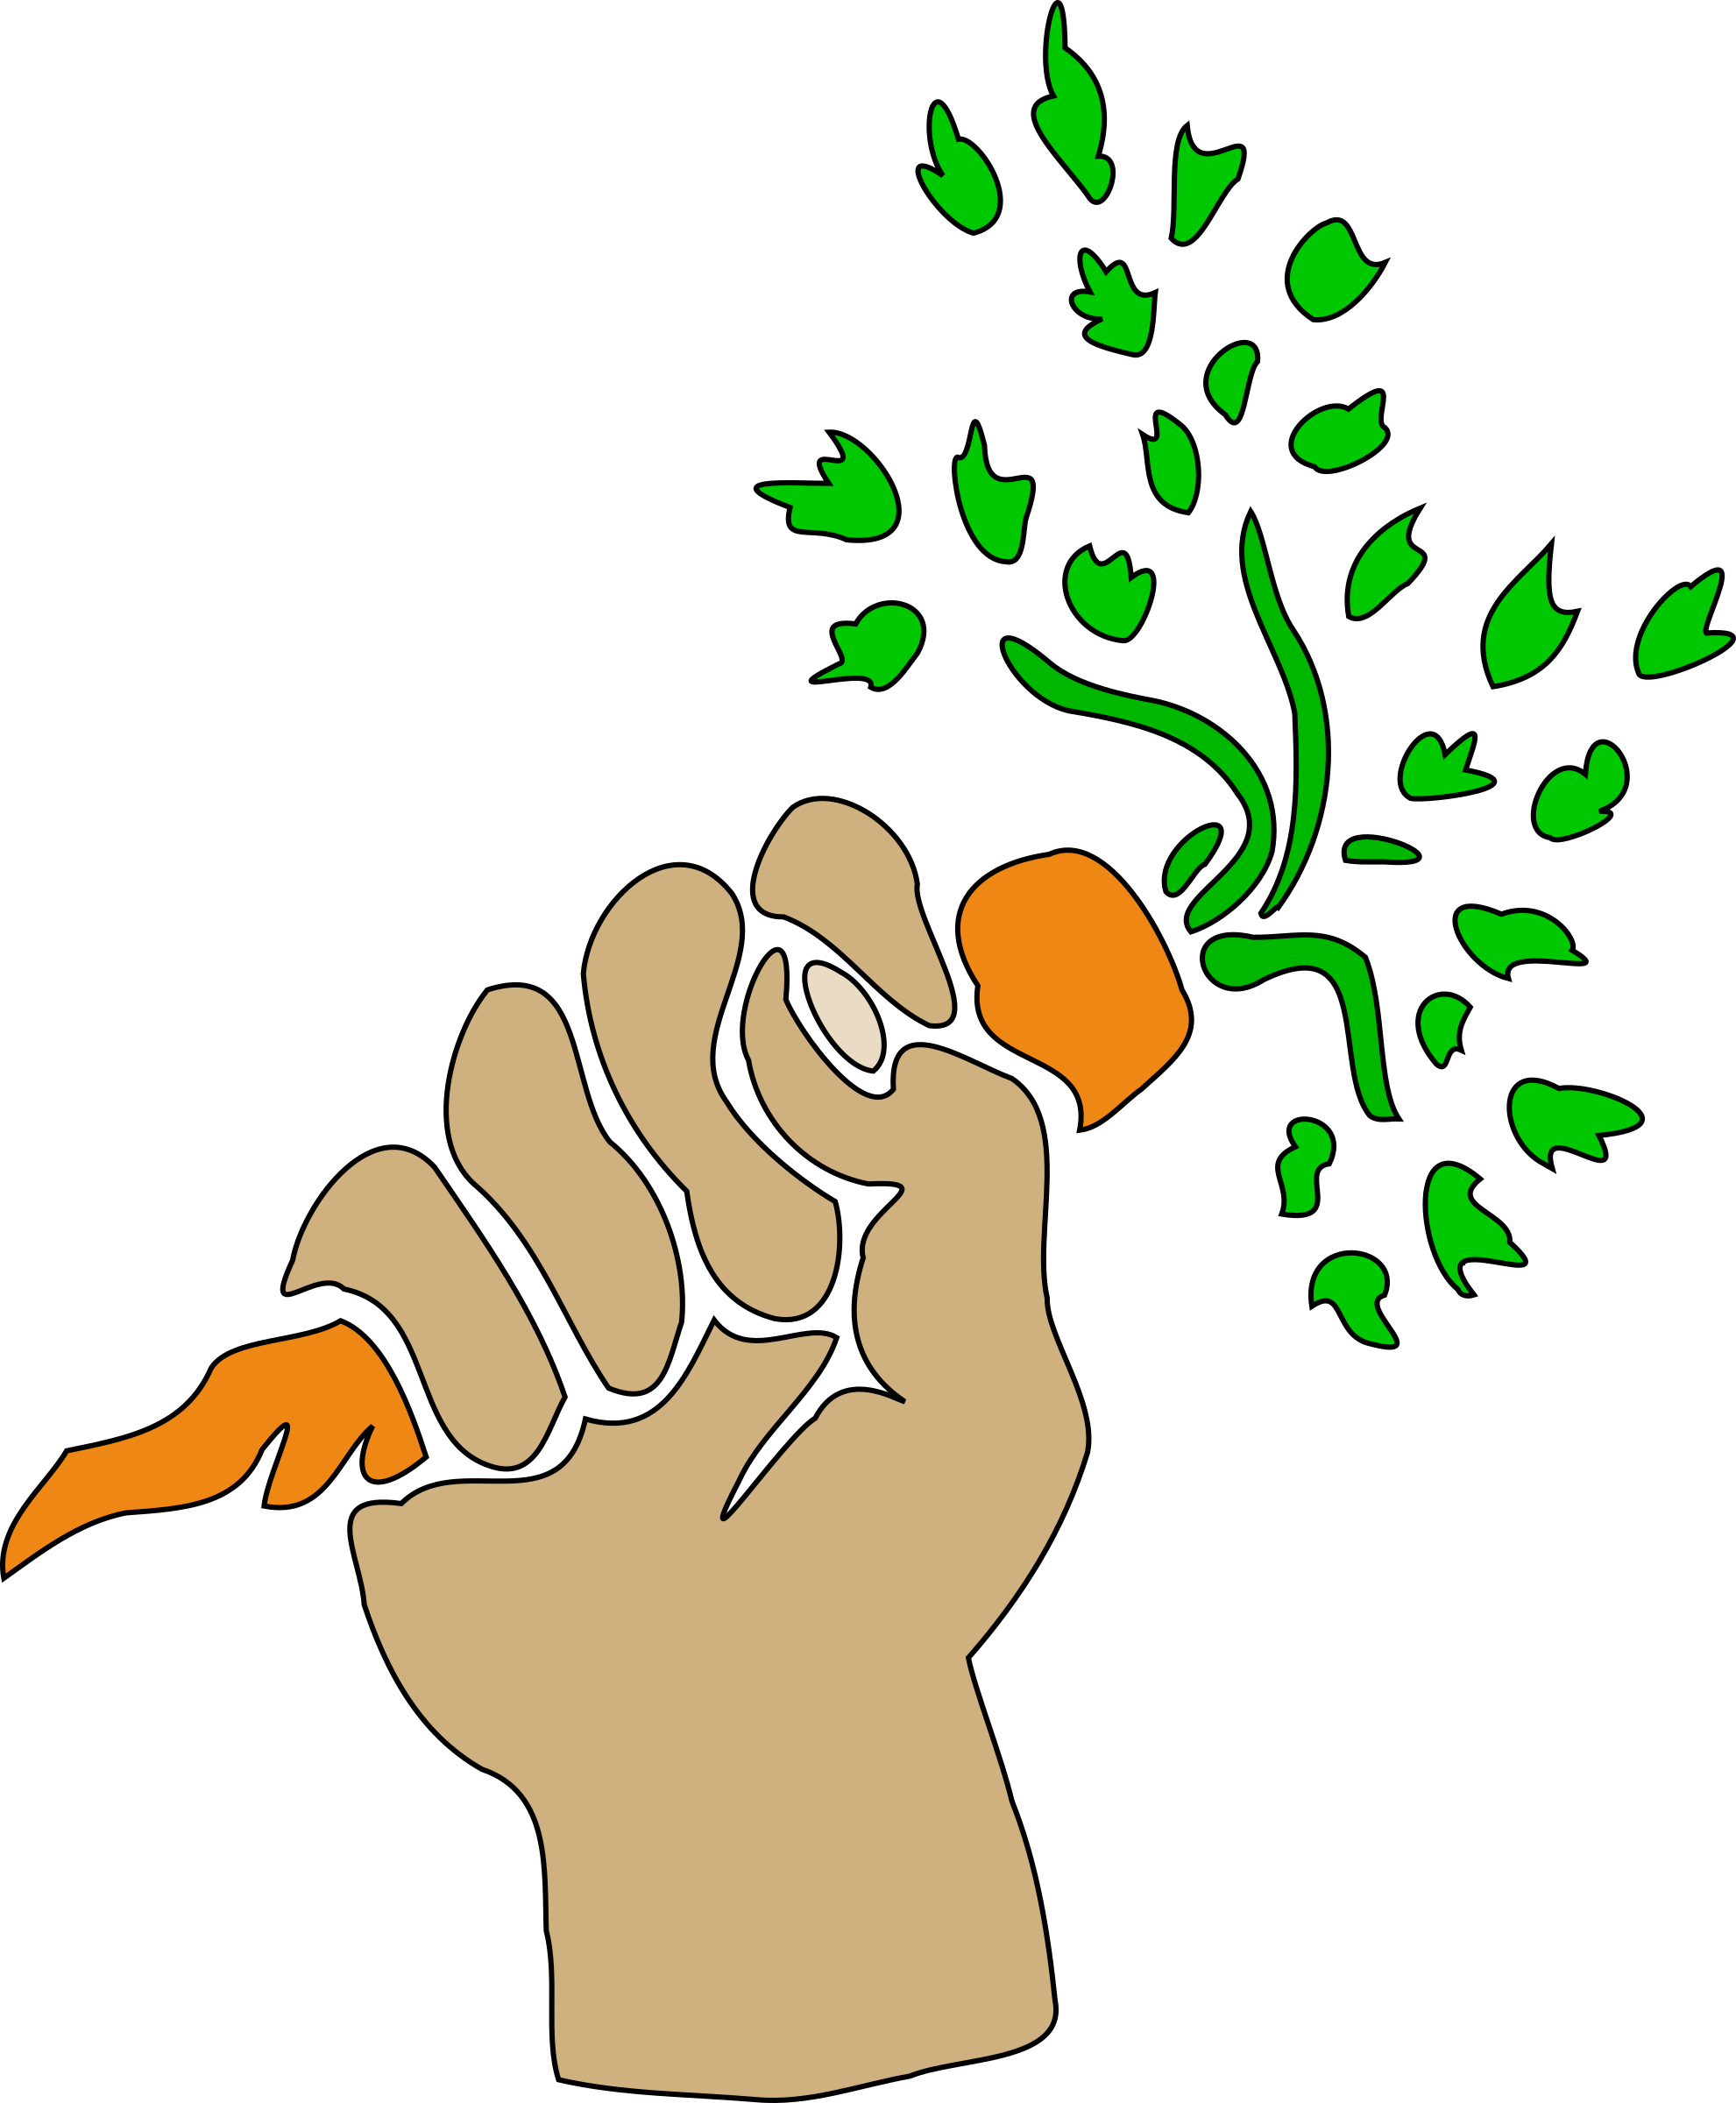 Carrot big image png. Clipart tree hand holding